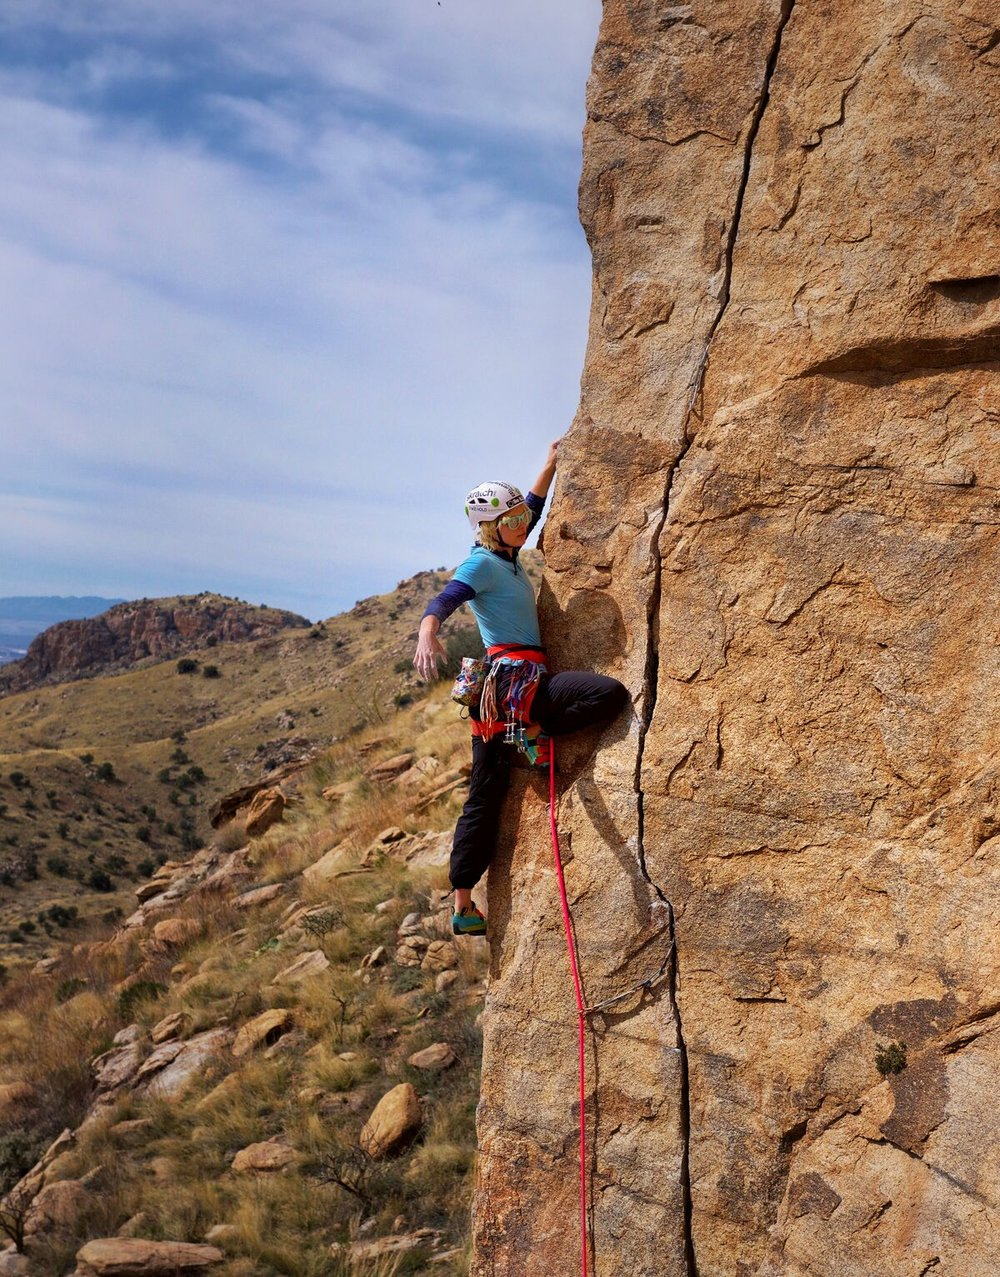 Sunspot Crag - Mt. Lemmon Photo: Todd Bukowski @tc.bukowski